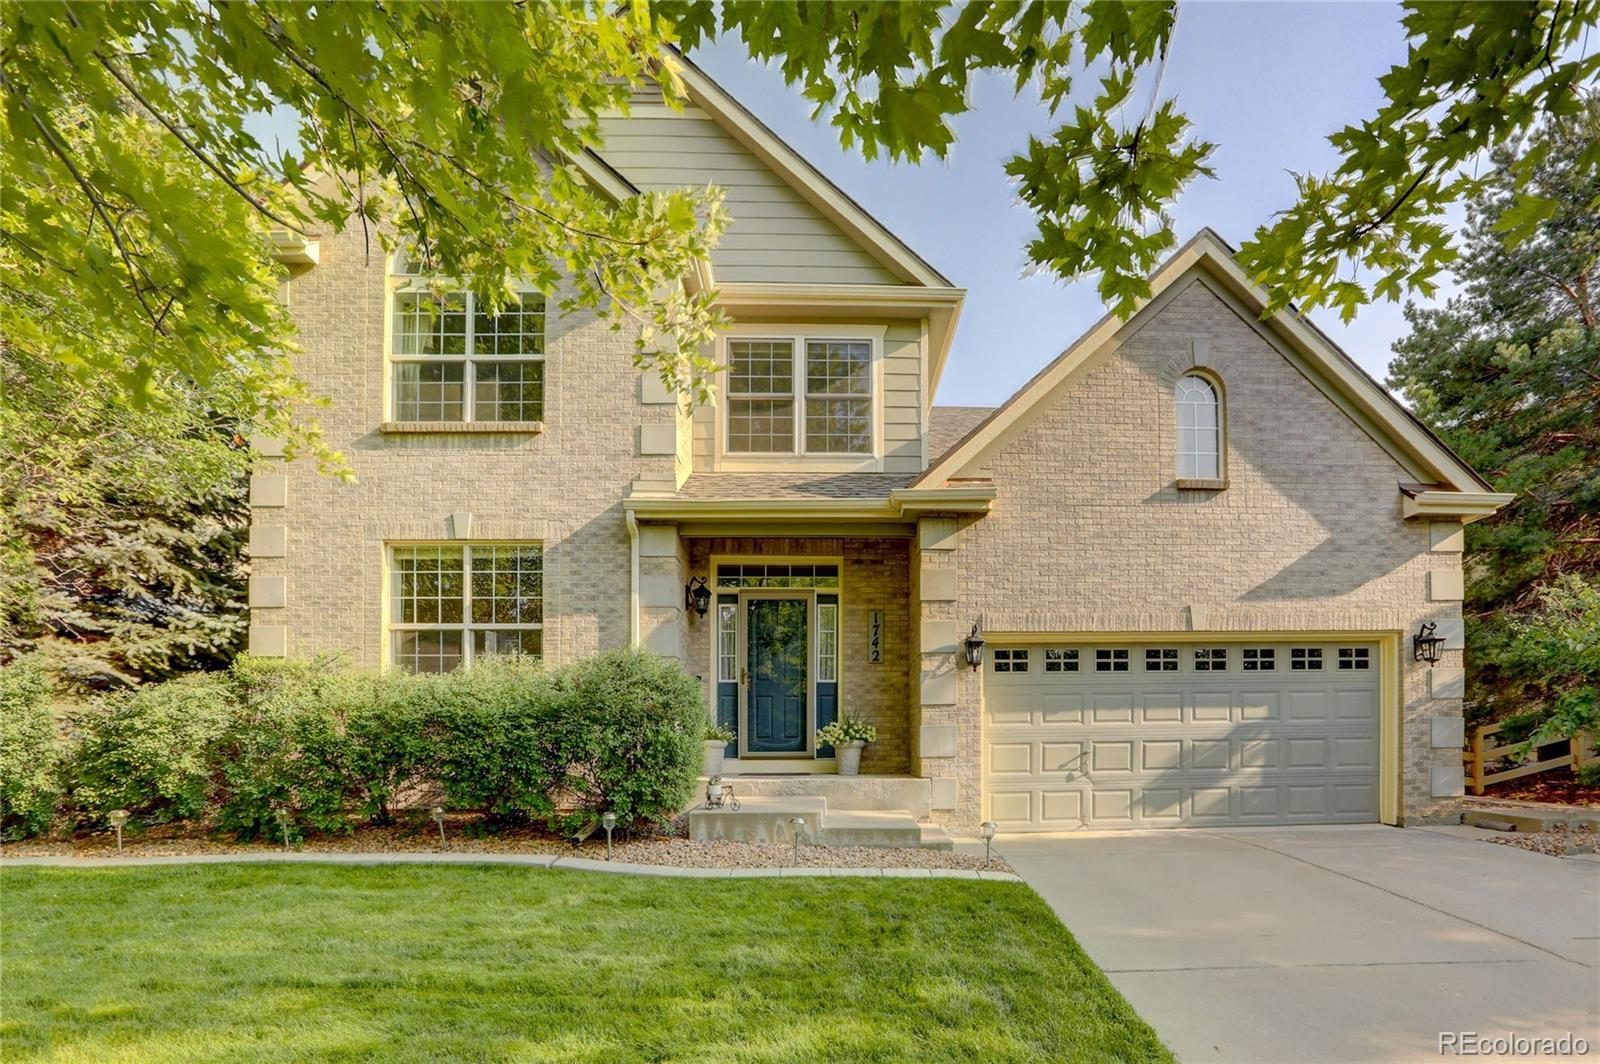 1742 W 130th Place, Westminster, CO 80234 - #: 7555244